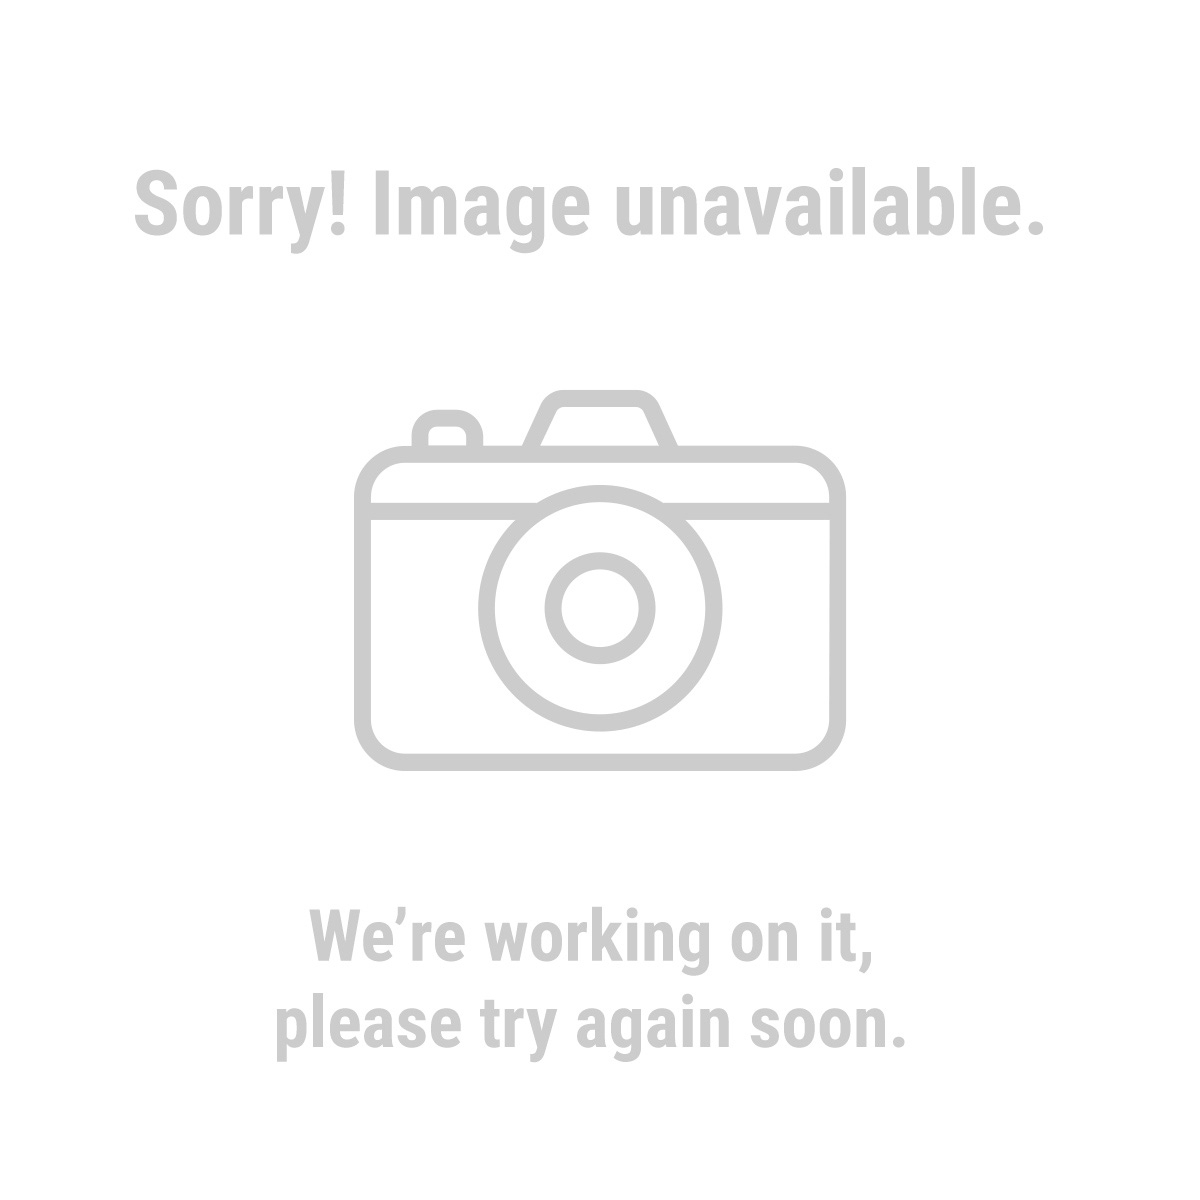 "HFT 92112 100 Ft. x 1/4"" Diamond Braid Rope"